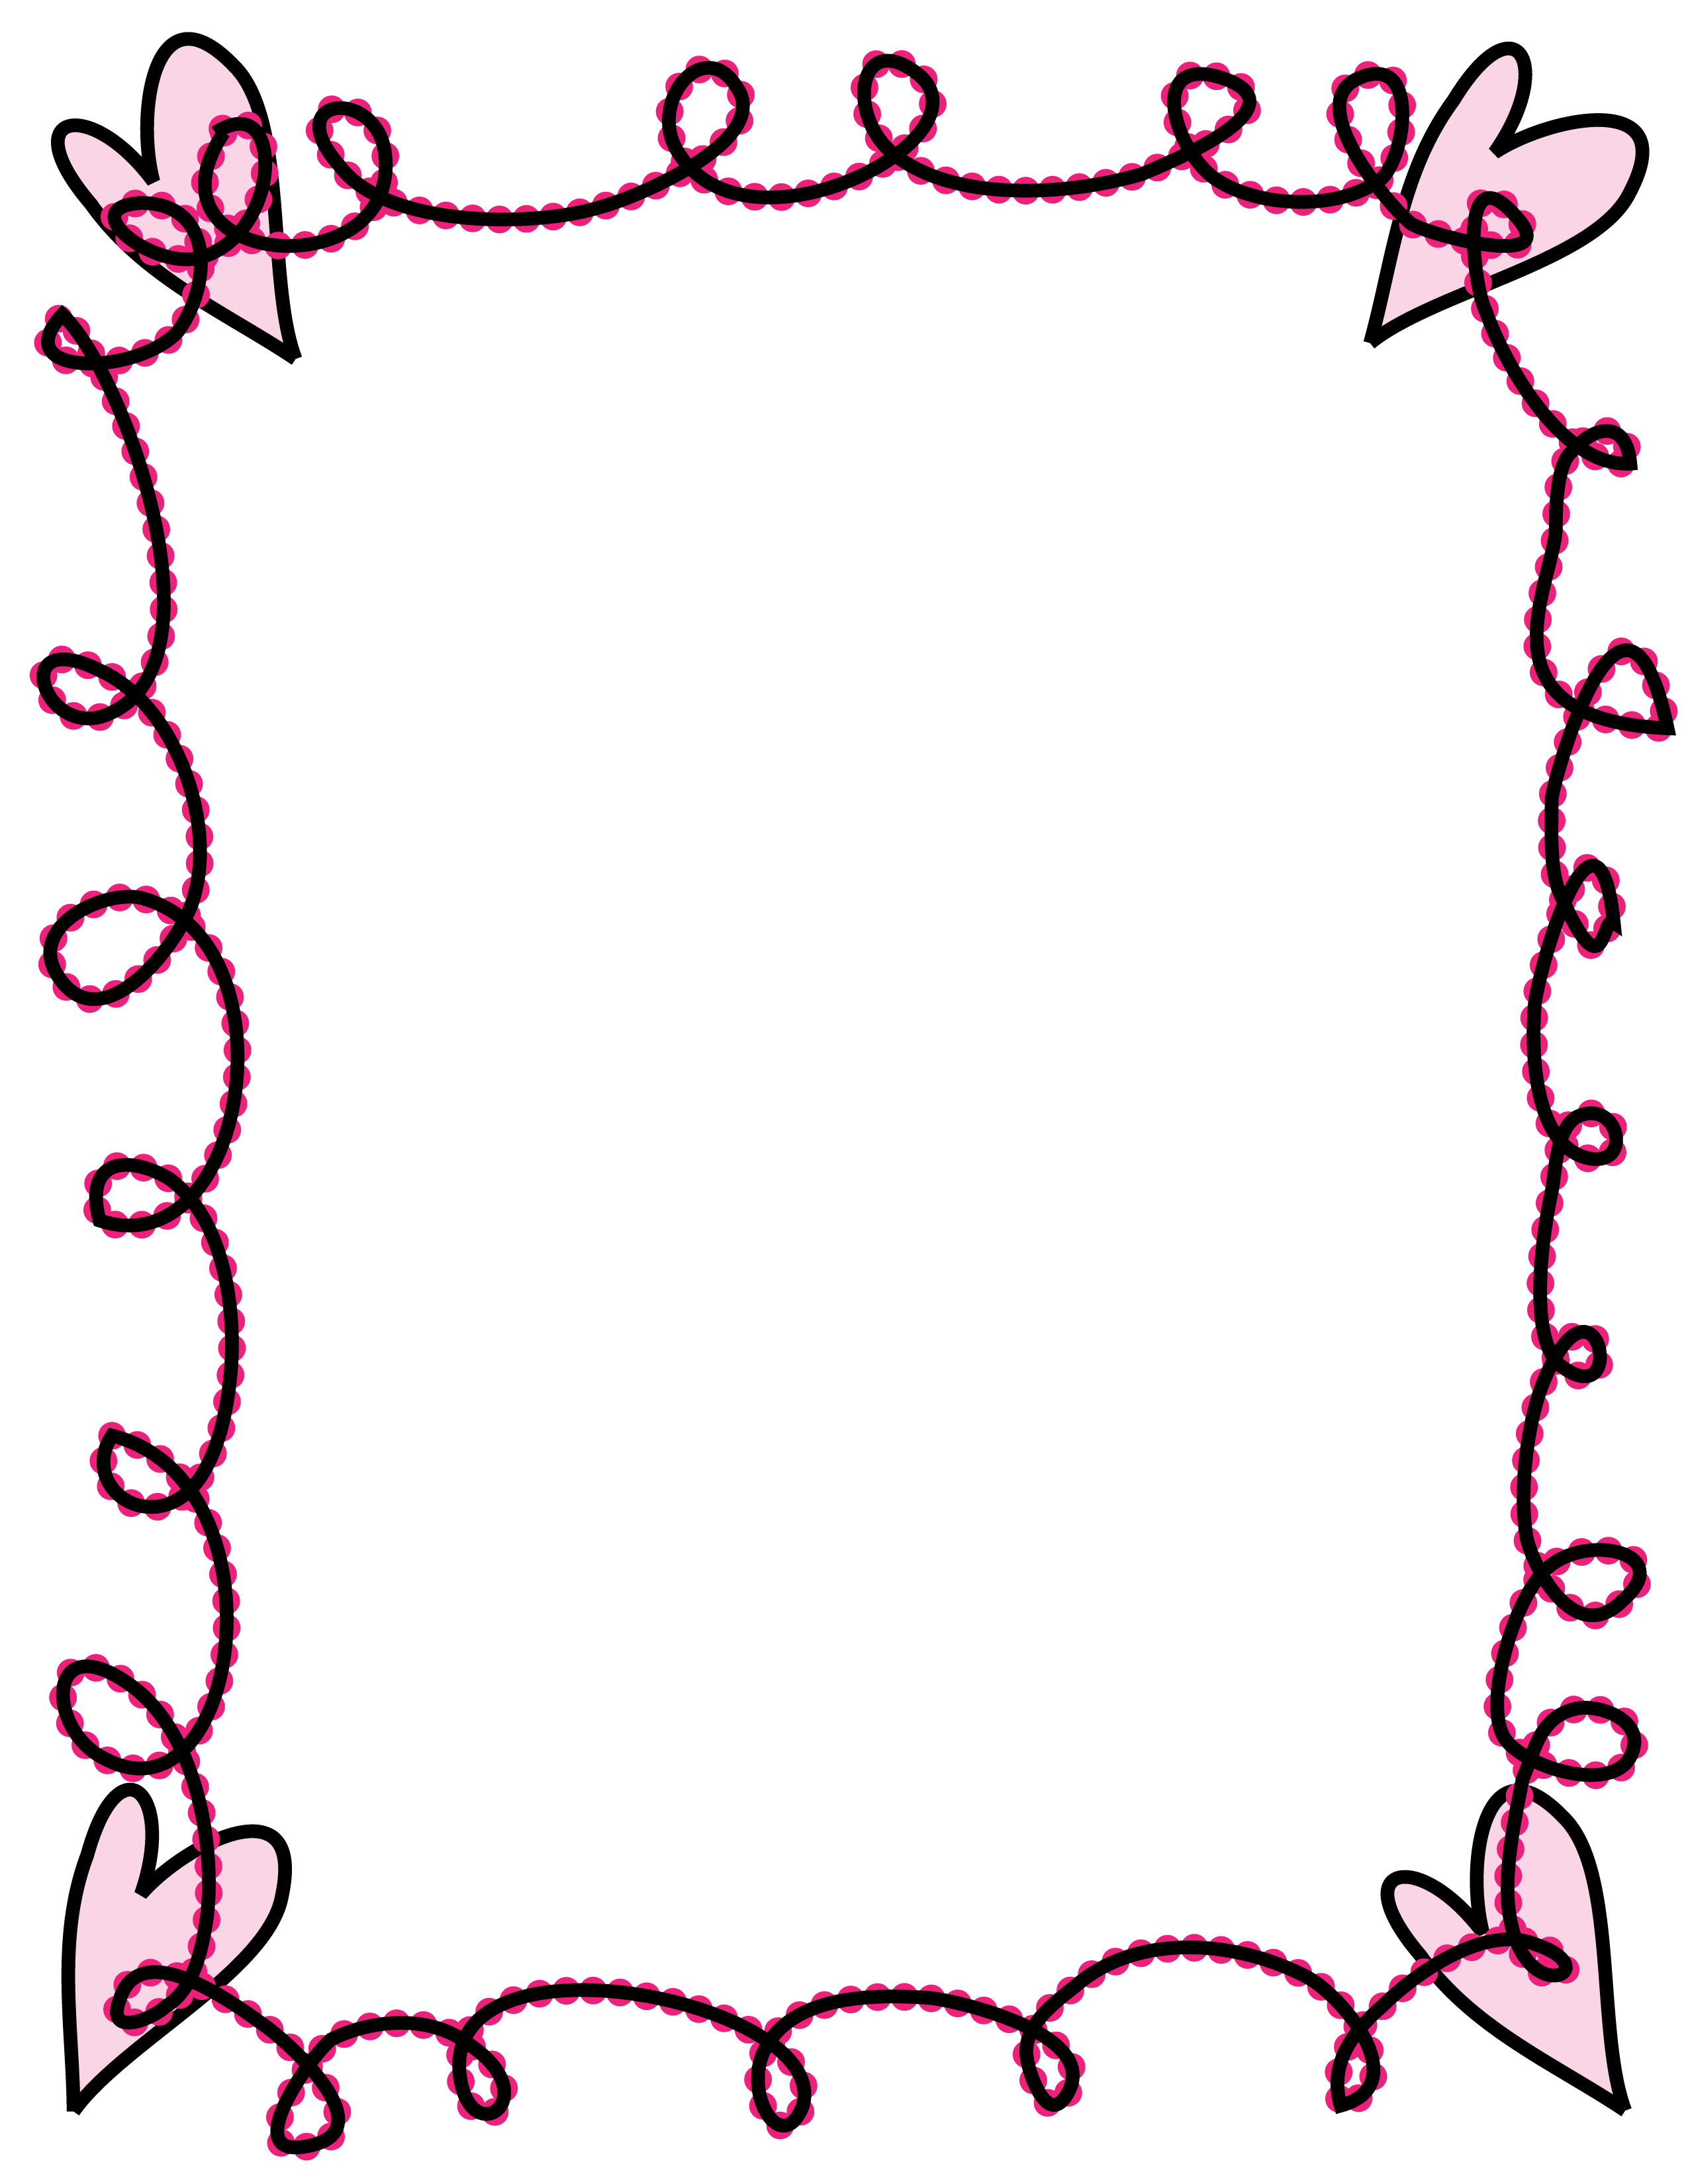 Doodle heart clipart transparent download A Free Doodle Frame | Pinterest | Doodles, Free and Doodle frames transparent download